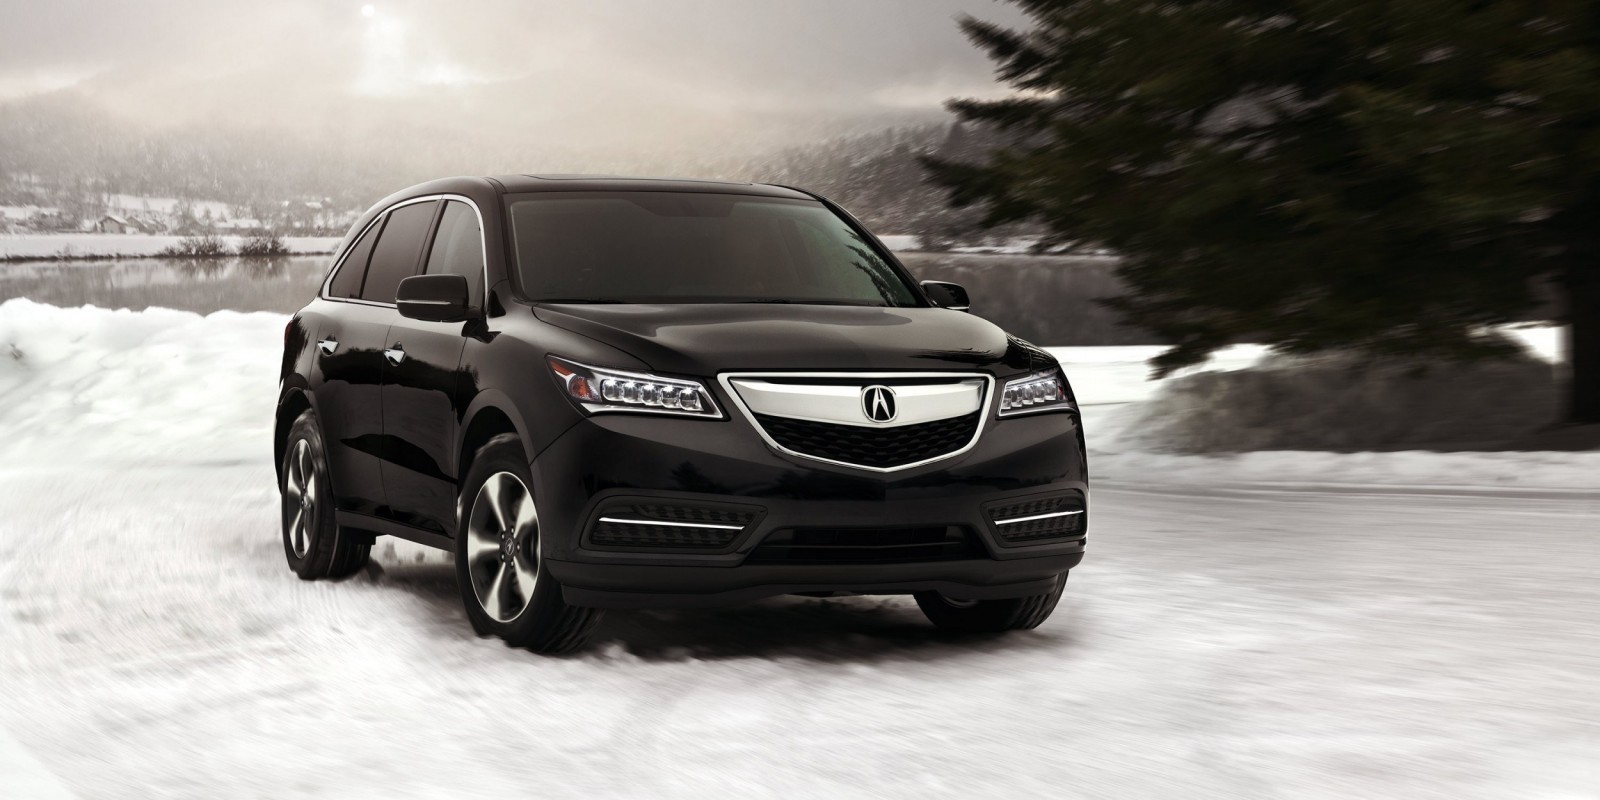 2017 Acura Mdx Colors Options Wheels Guide From 43k